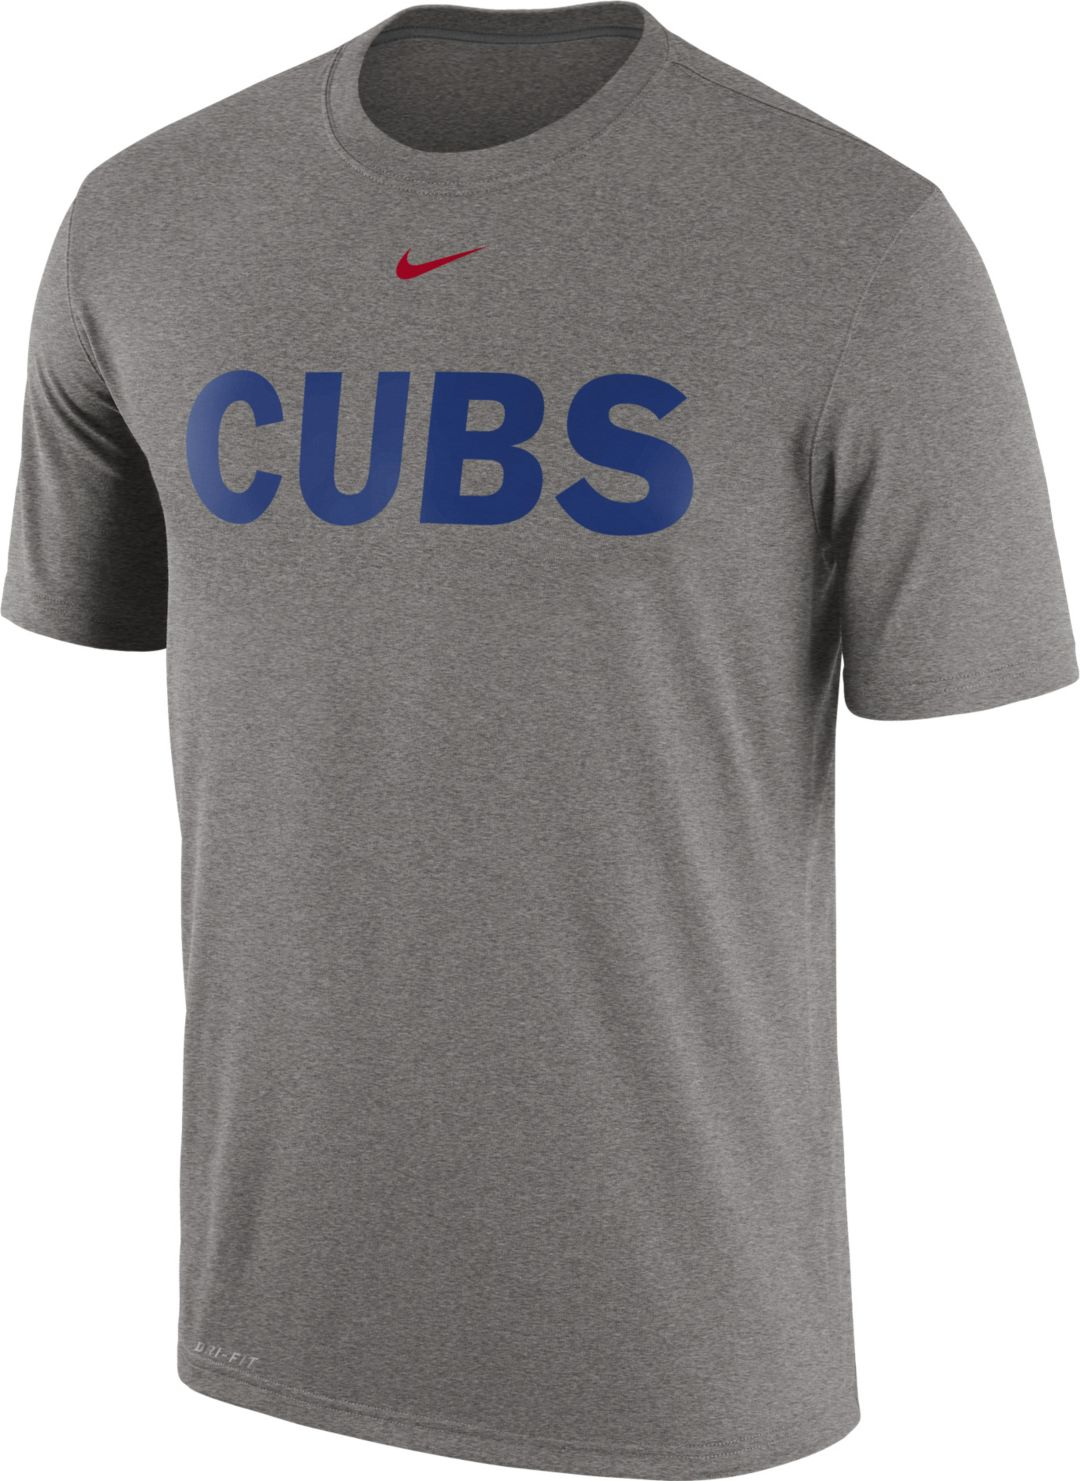 new arrival 0948d 0e46f Nike Men's Chicago Cubs Dri-FIT Legend T-Shirt